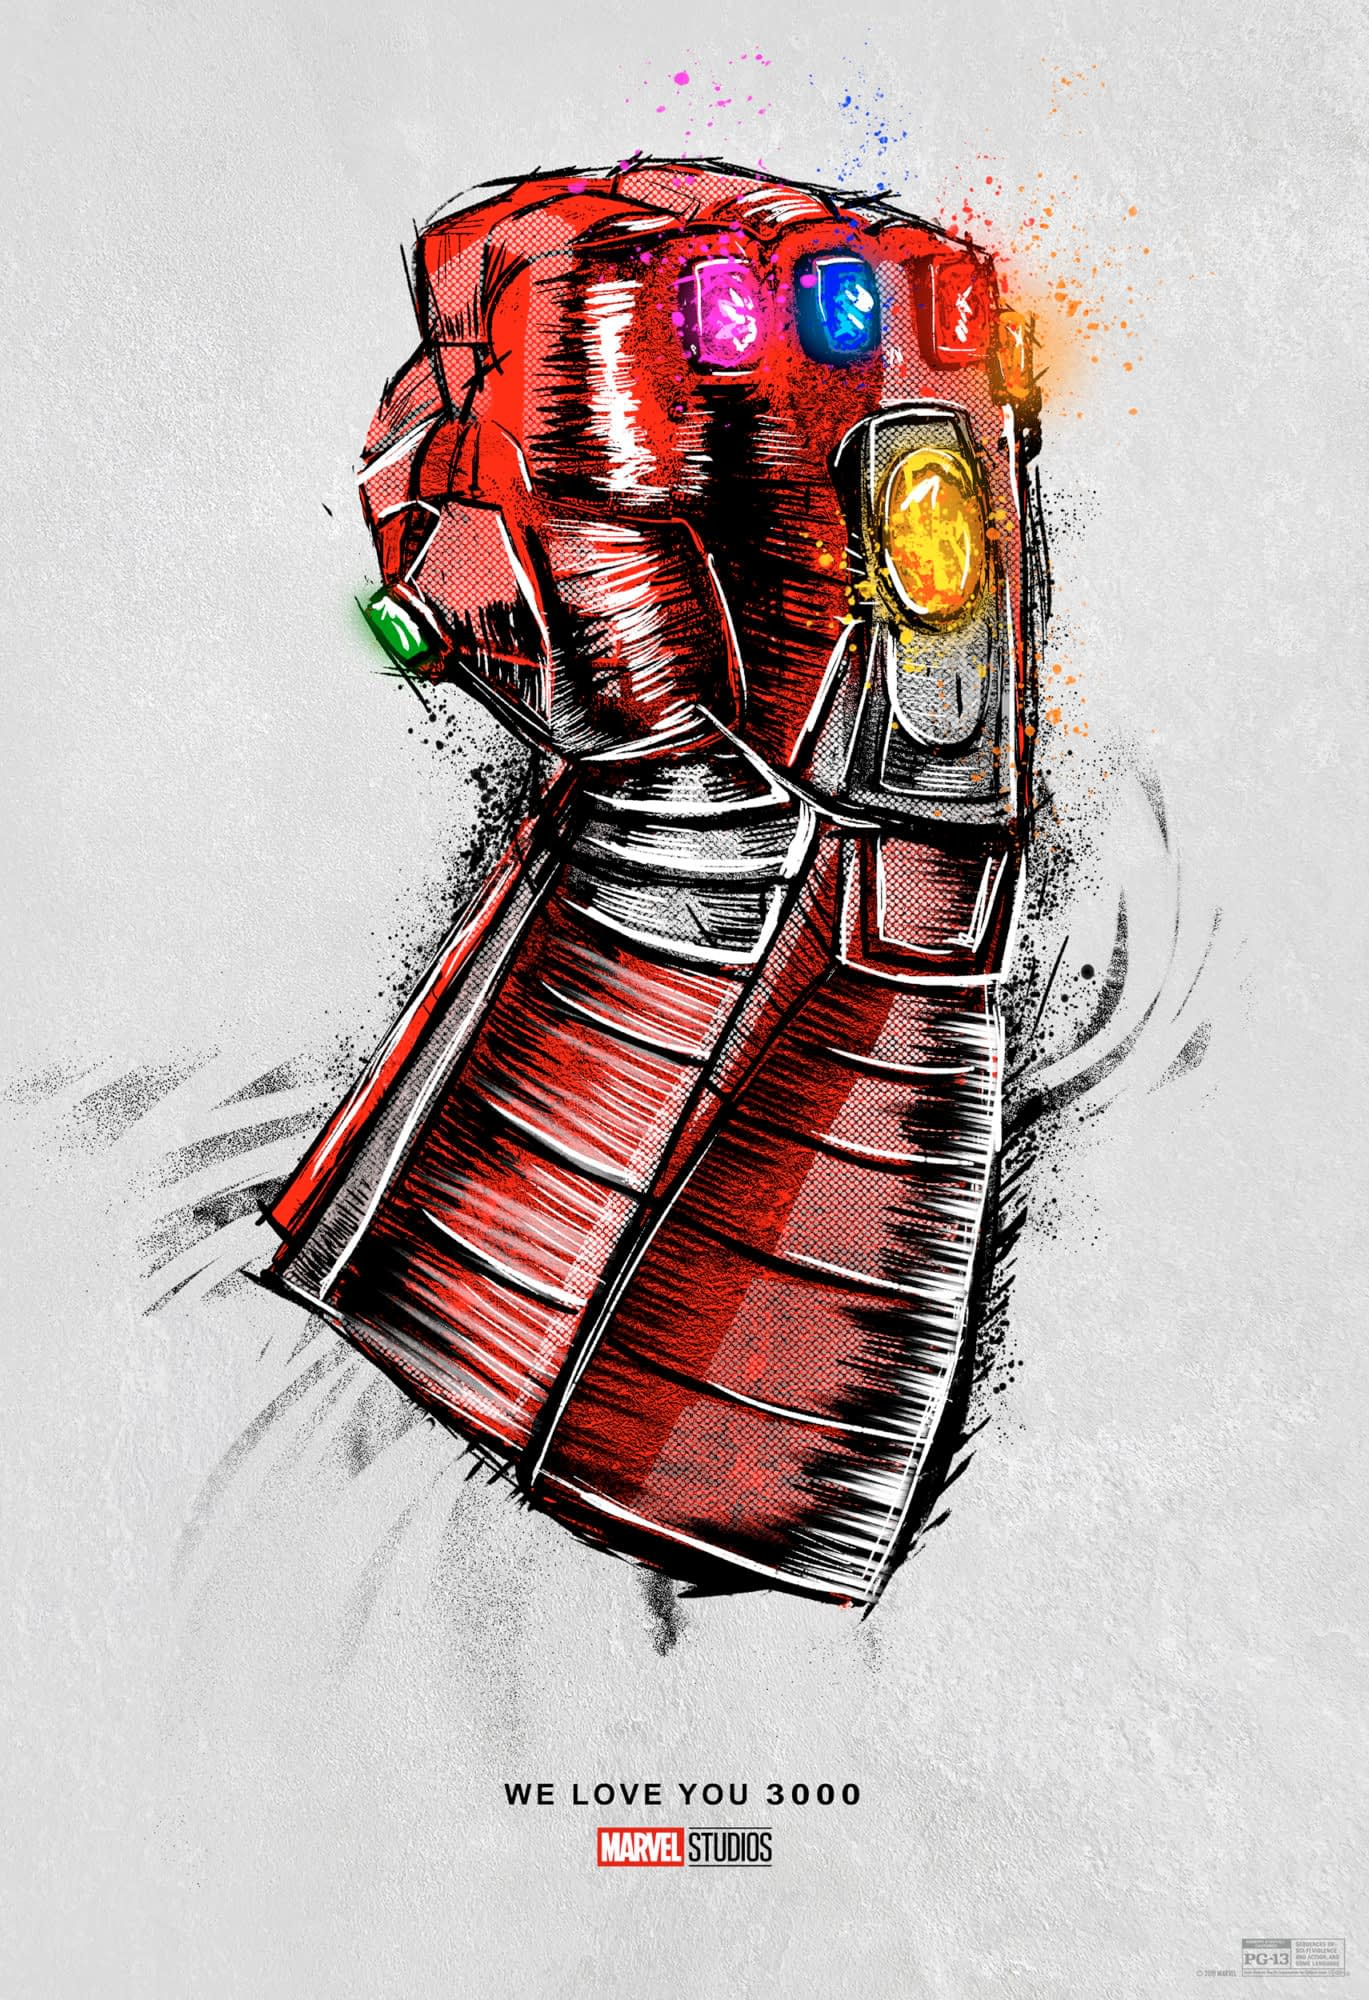 """Avengers: Endgame"" Re-Release Tickets Go on Sale, New Poster and Details on the New Content"